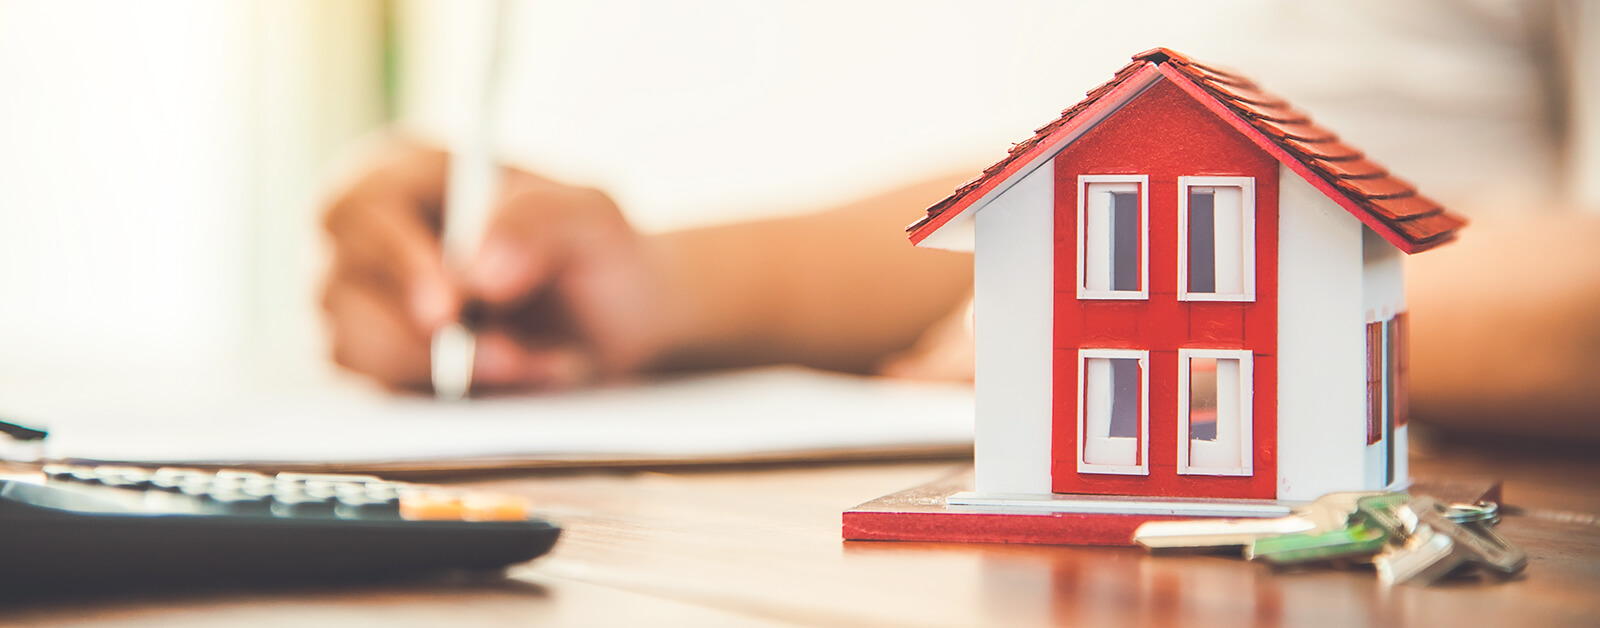 RE/MAX Amistad: A People-First Approach to Real Estate